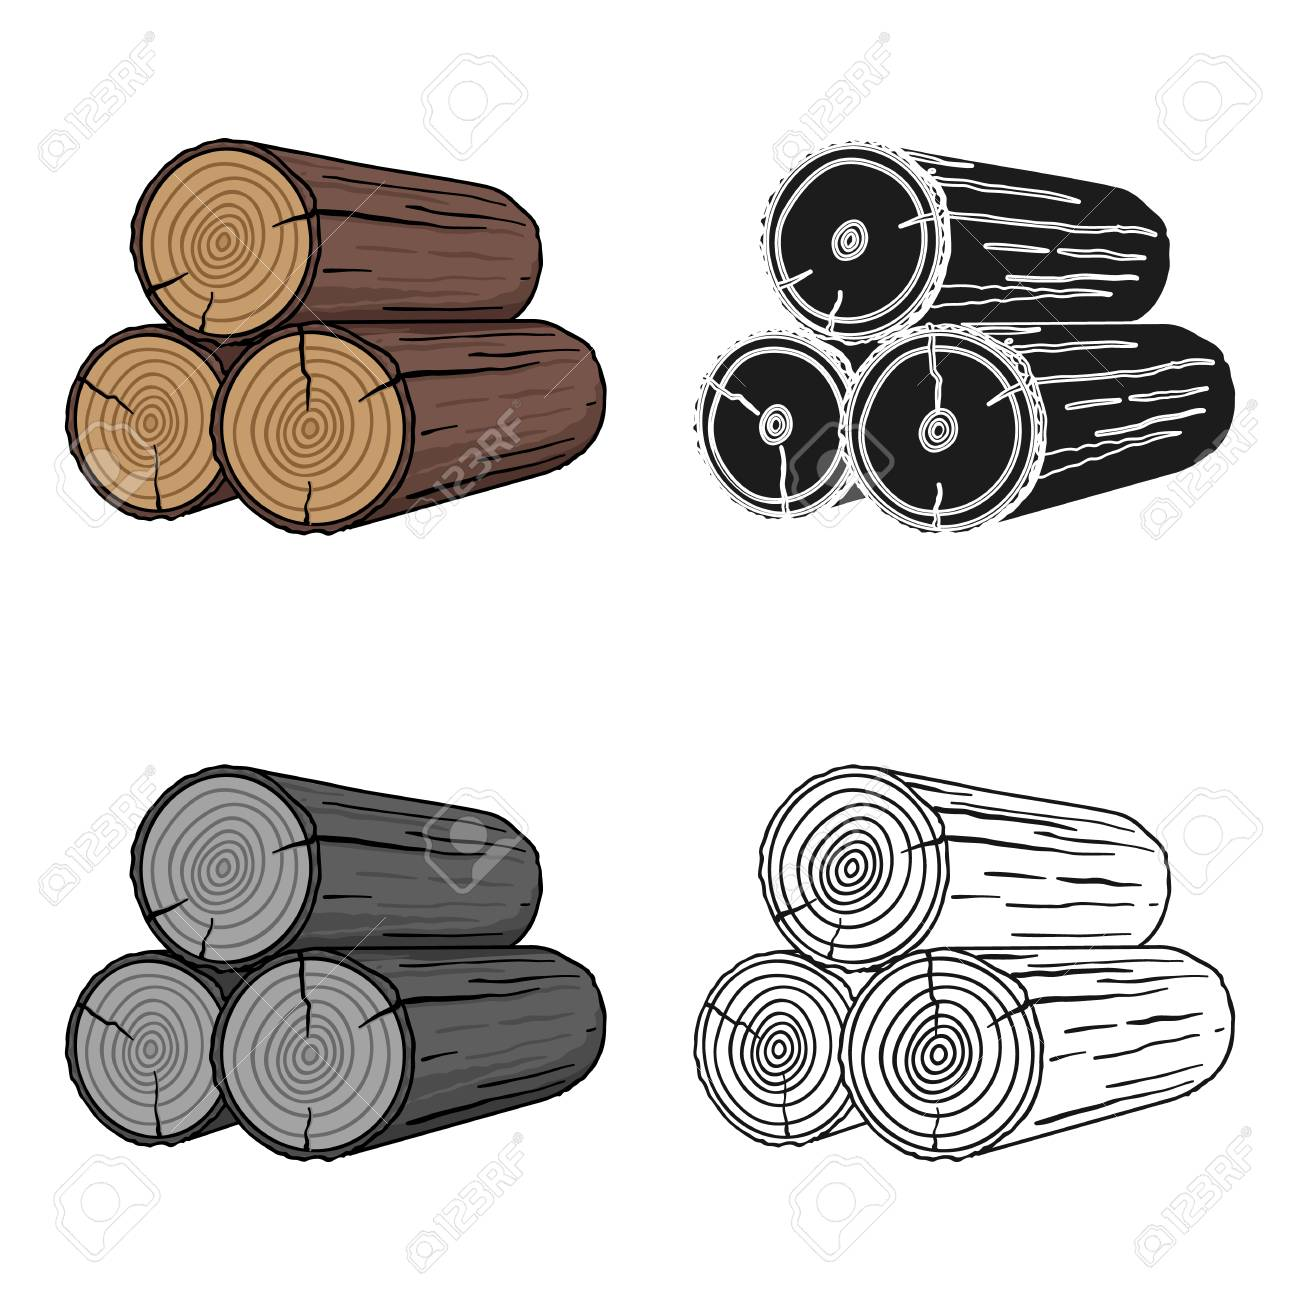 Stack of logs icon in cartoon style isolated on white background. Sawmill and timber symbol stock vector illustration. - 76860135